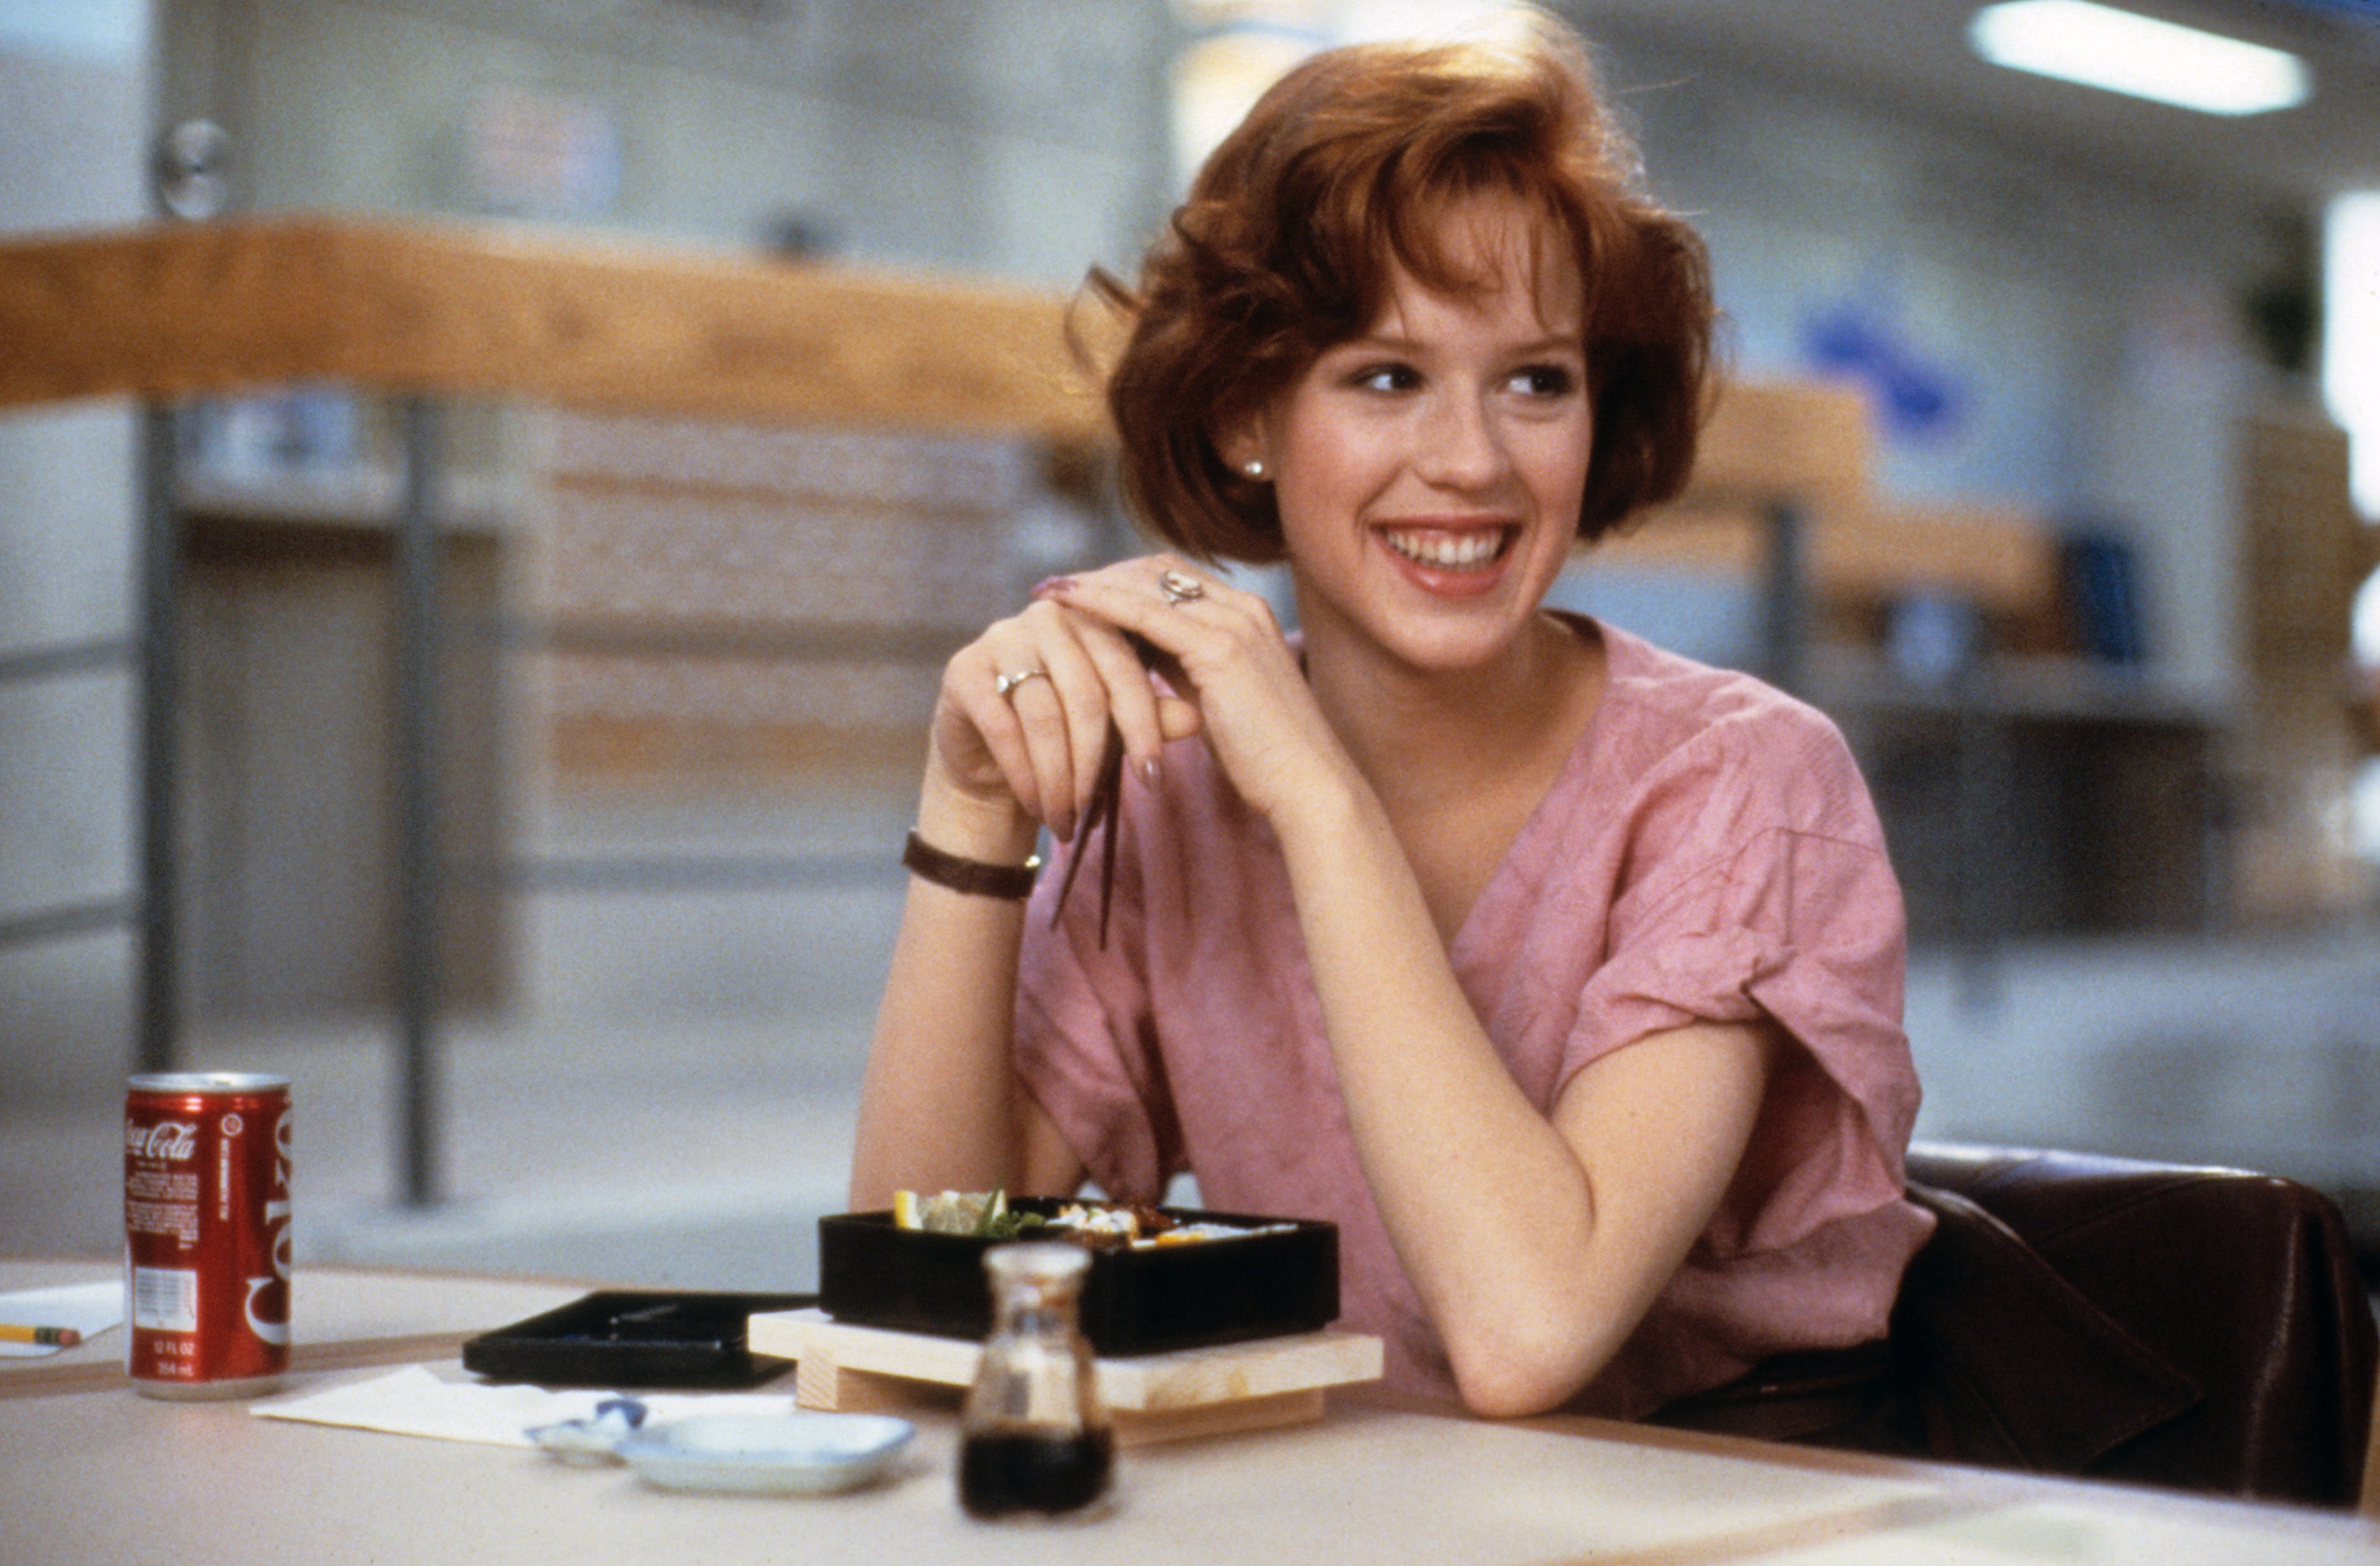 Hell Baby Nude Scene molly ringwald writes essay on discomfort with john hughes